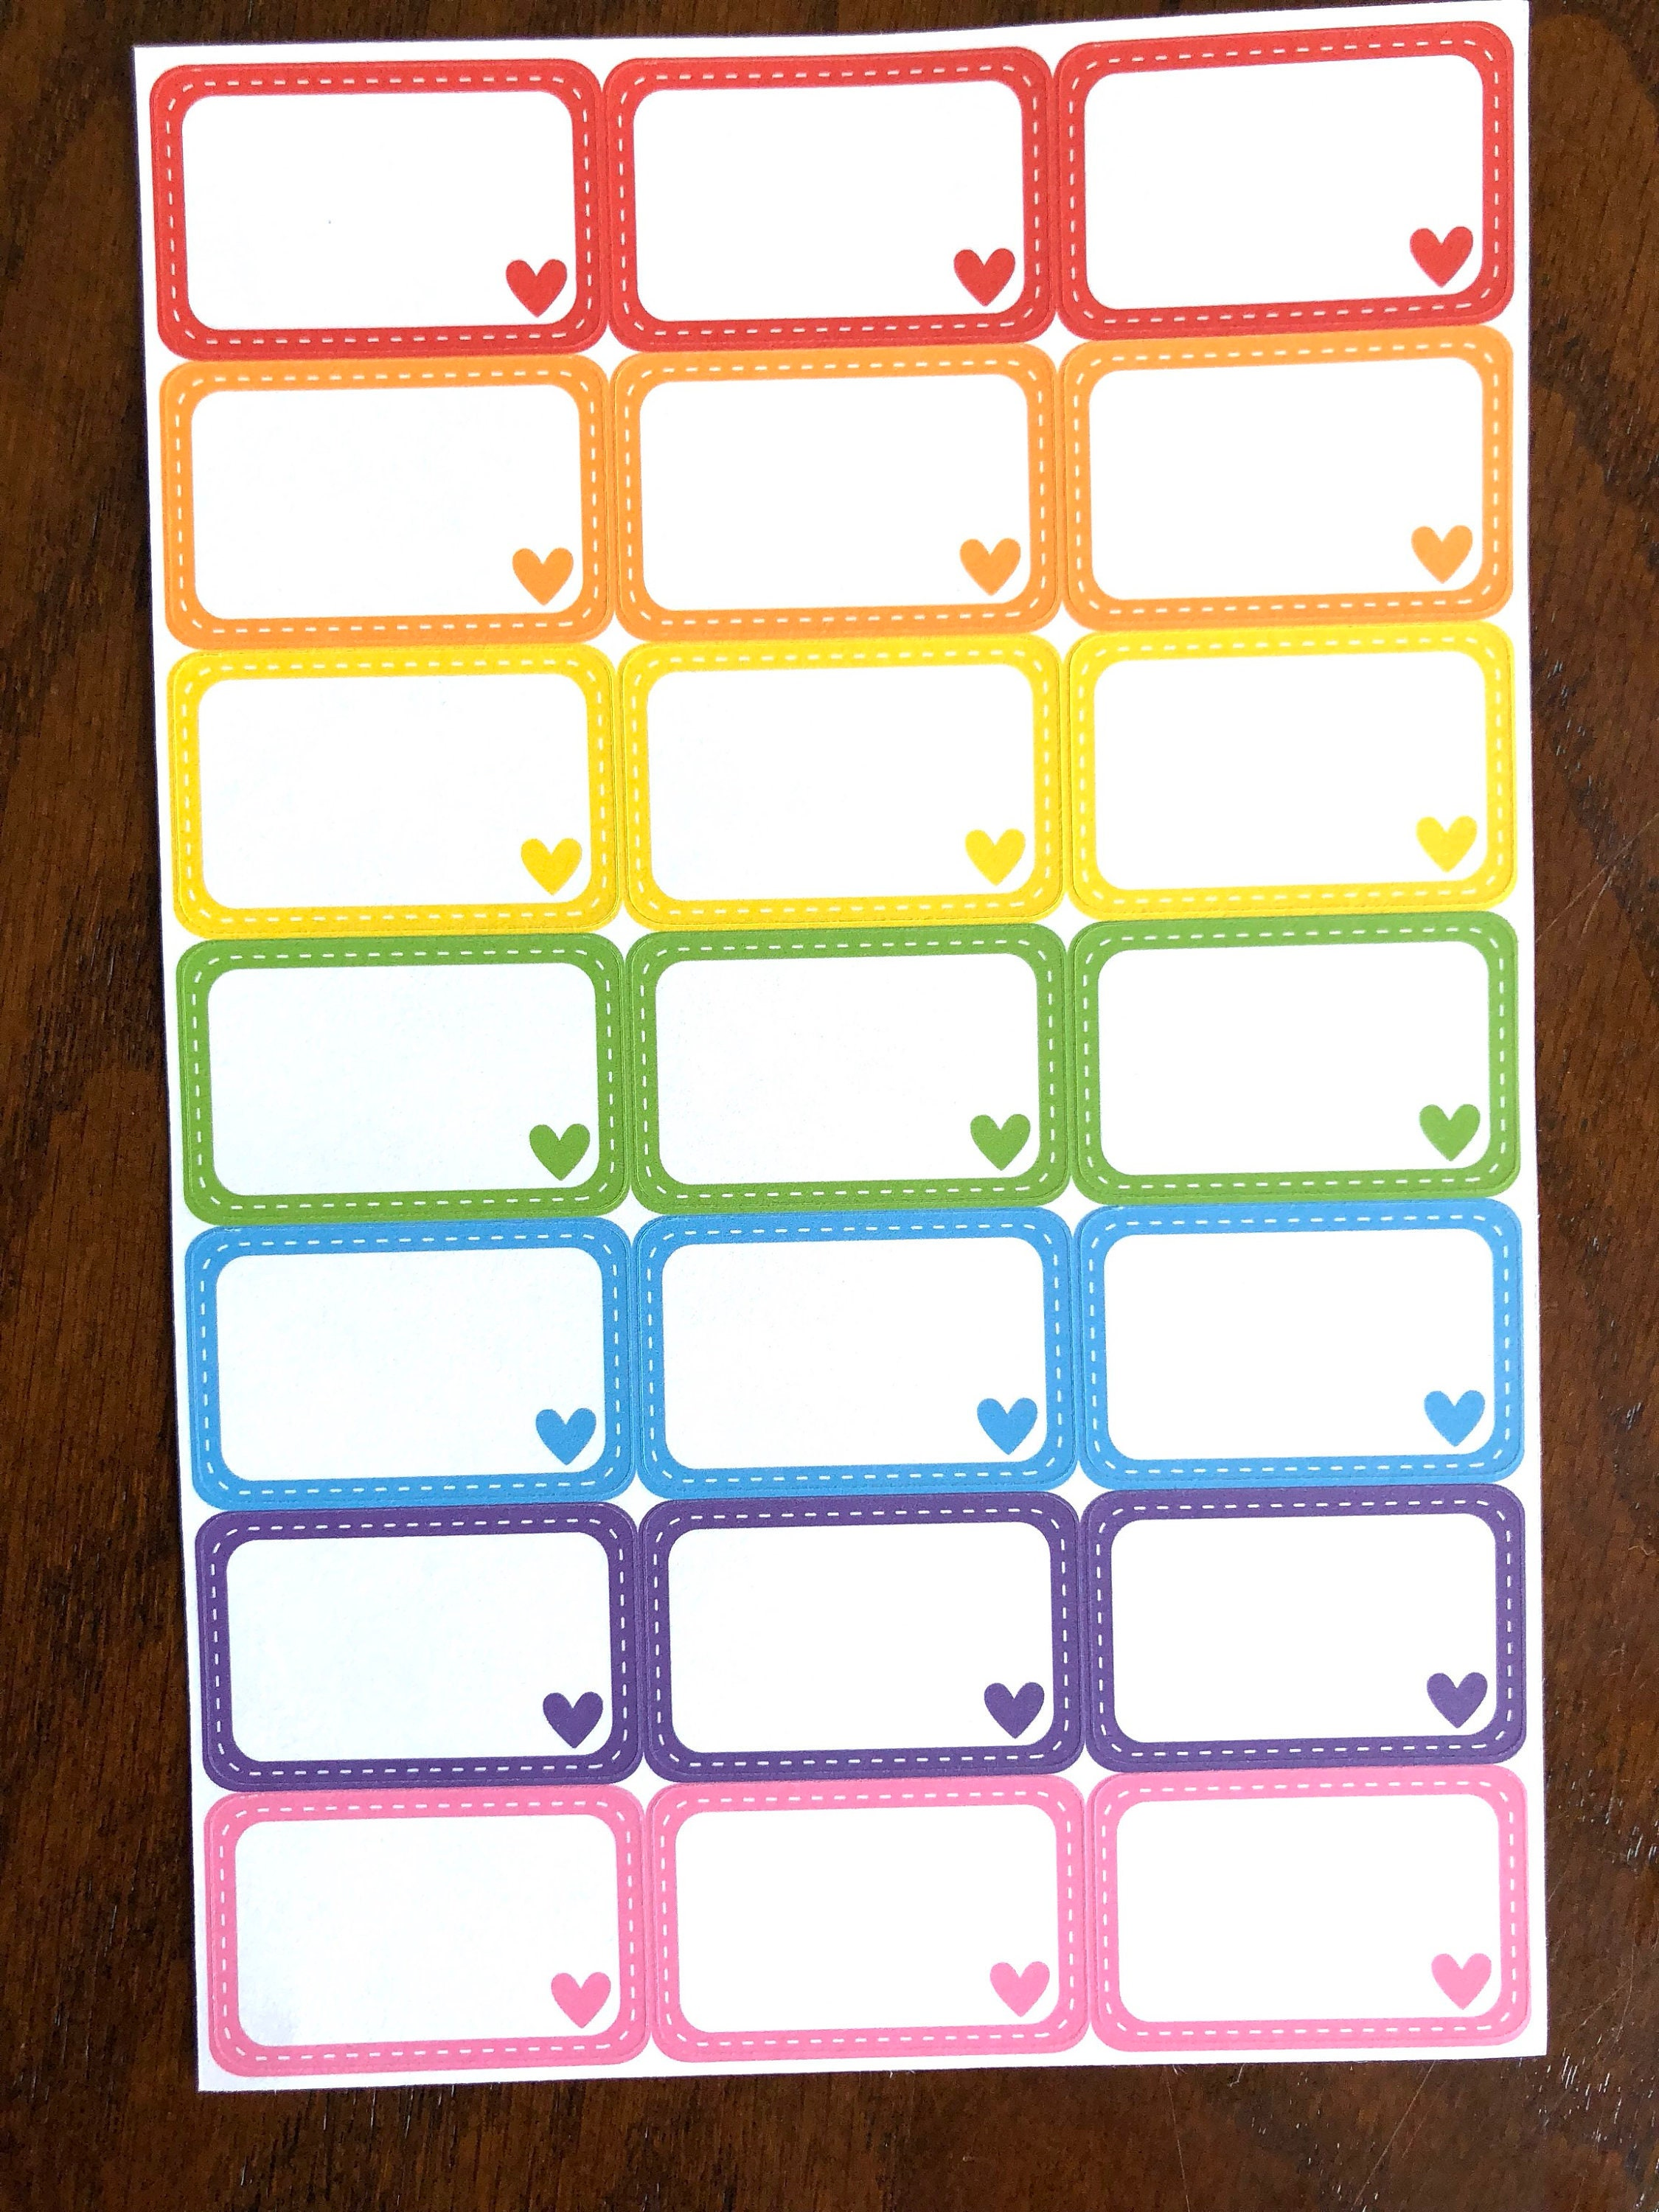 Rainbow Hearts Half Boxes Stitched Half Boxes Planner